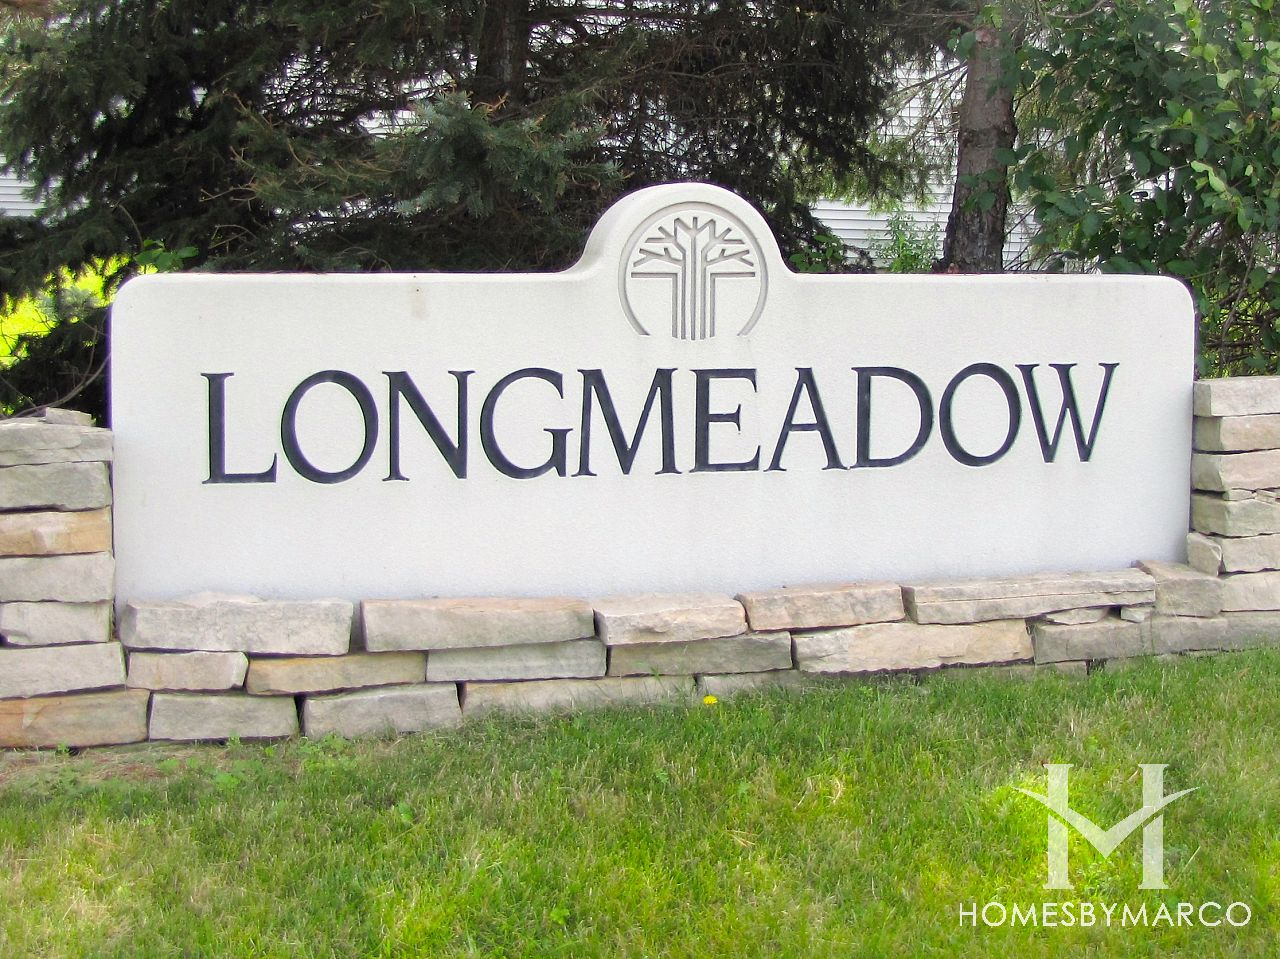 singles in longmeadow Get to know hot usaf singles with east longmeadow air force chat tools like video chat and im join now to start connecting.